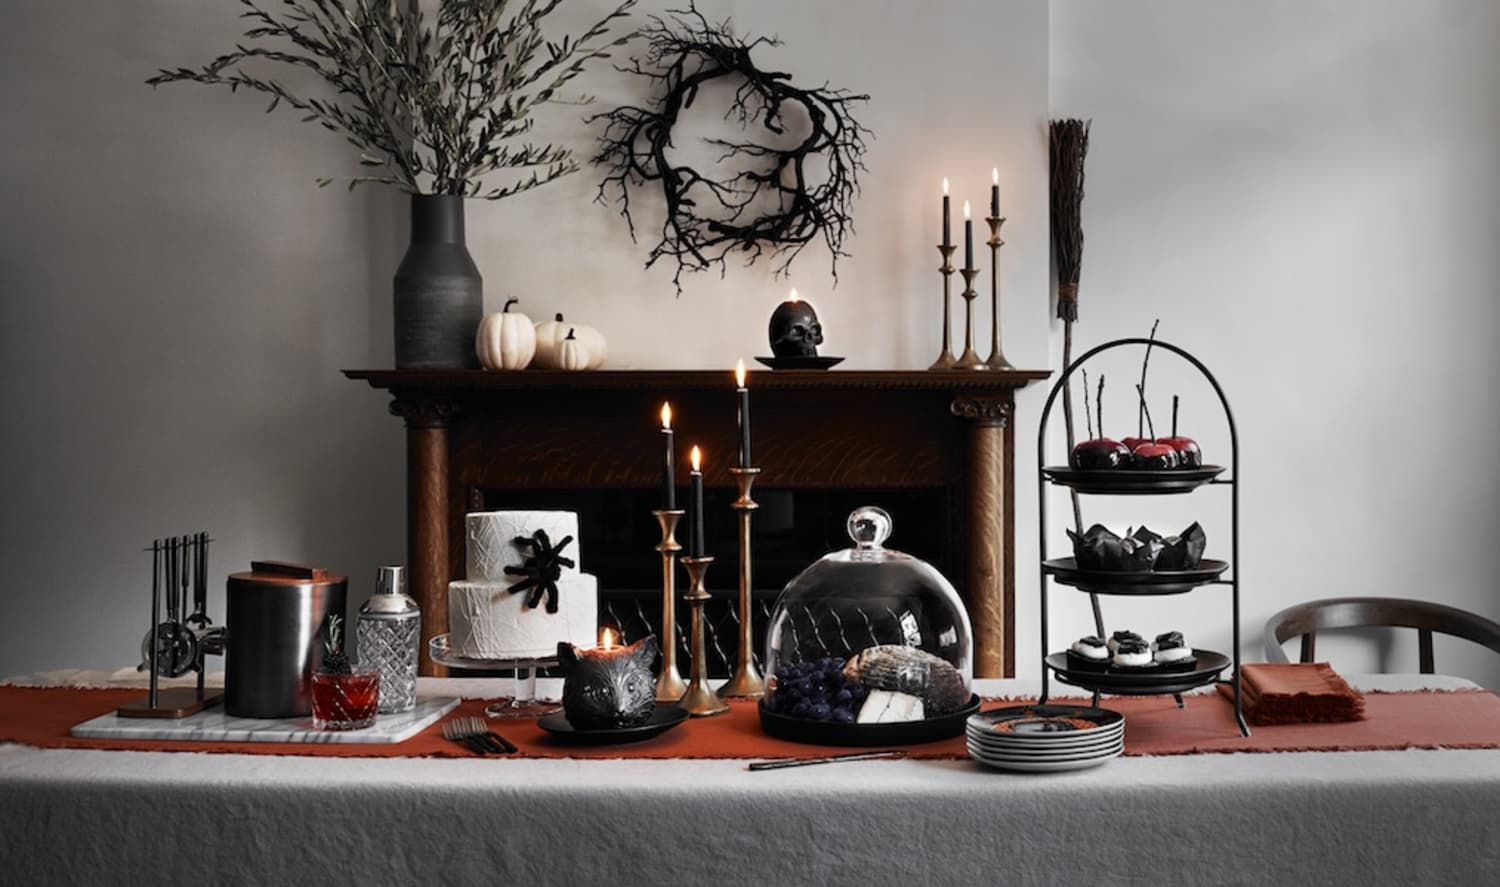 Crate & Barrel's Gothic Halloween Collection Includes Skull Candles and Witches' Brooms